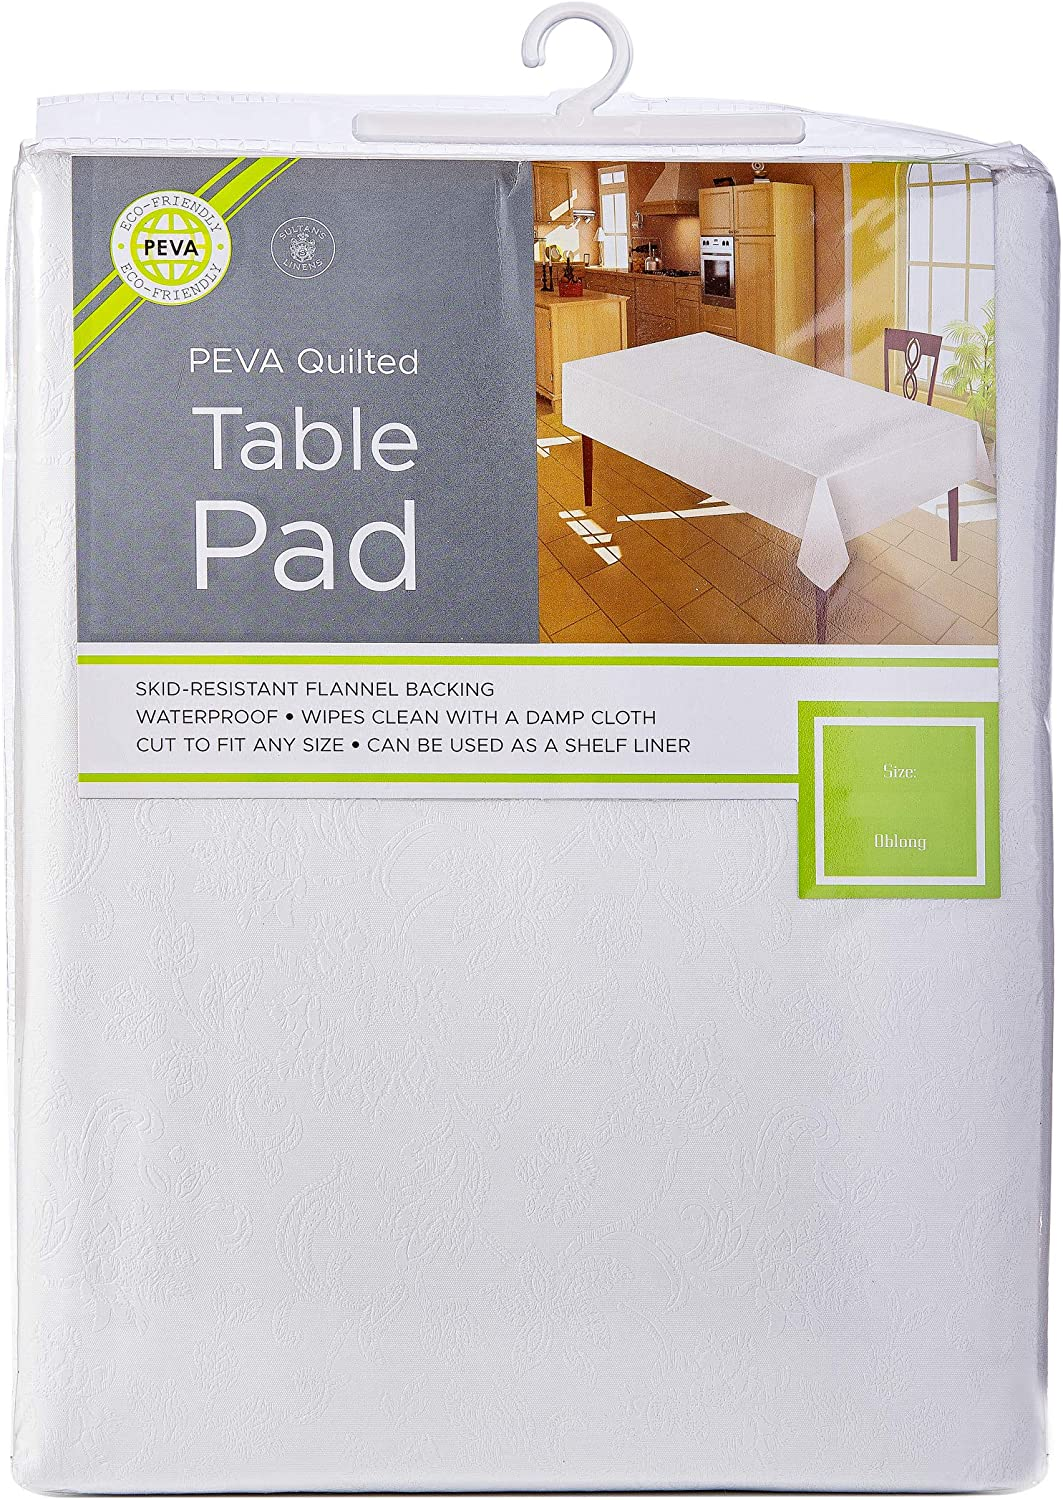 Sultan's Linens Eco-Friendly Peva Table Pad Waterproof Surface with Flannel Backing Floral (104-inch)